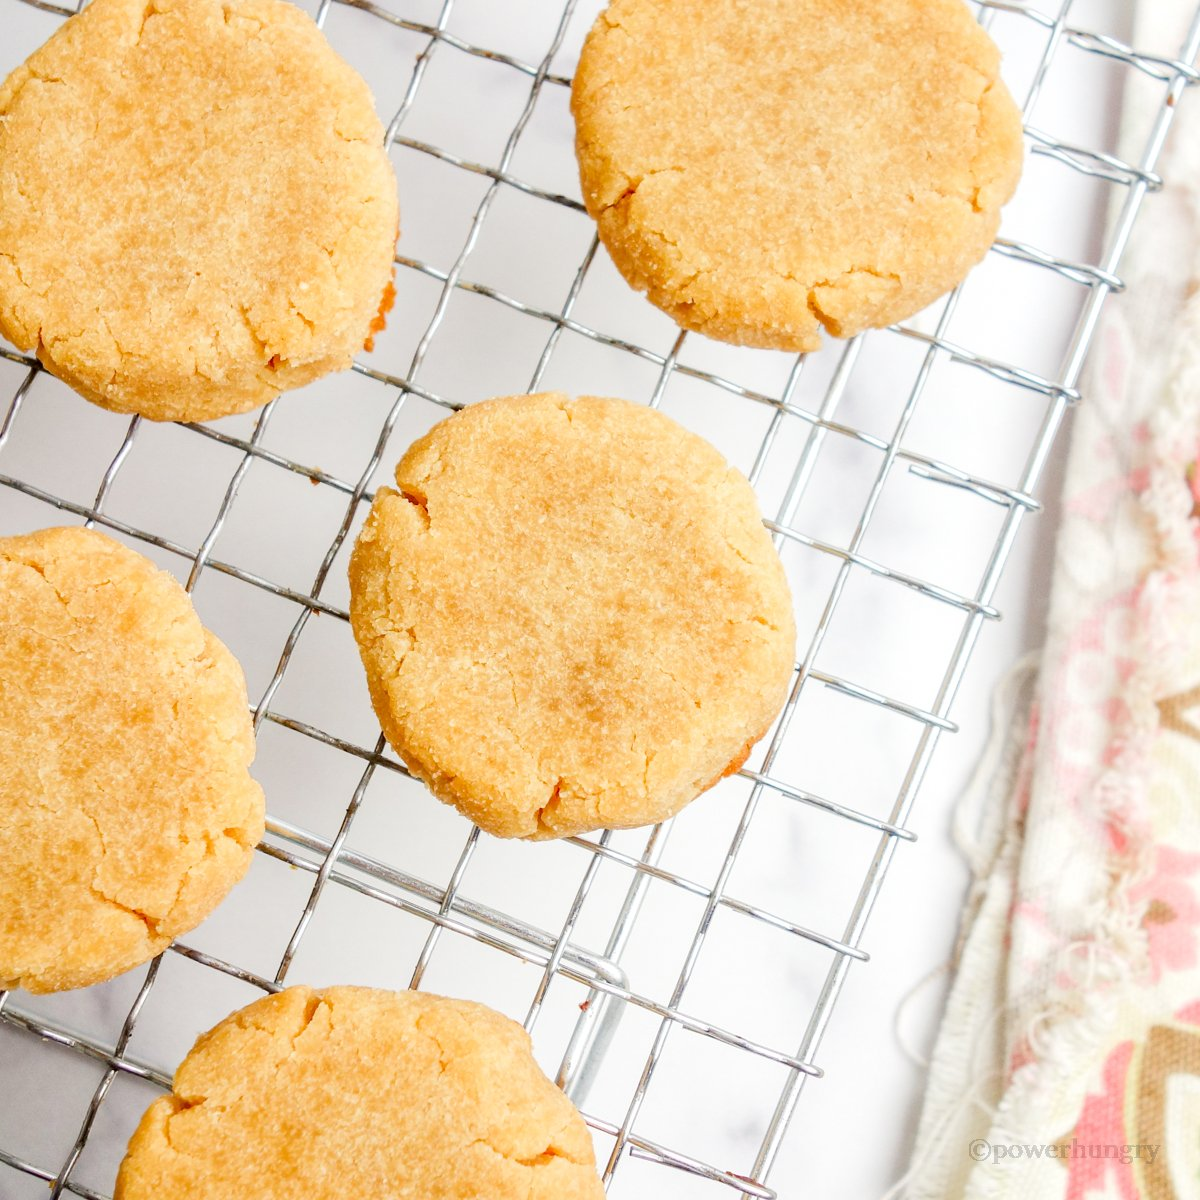 coconut flour shortbread on a wire cooling rack